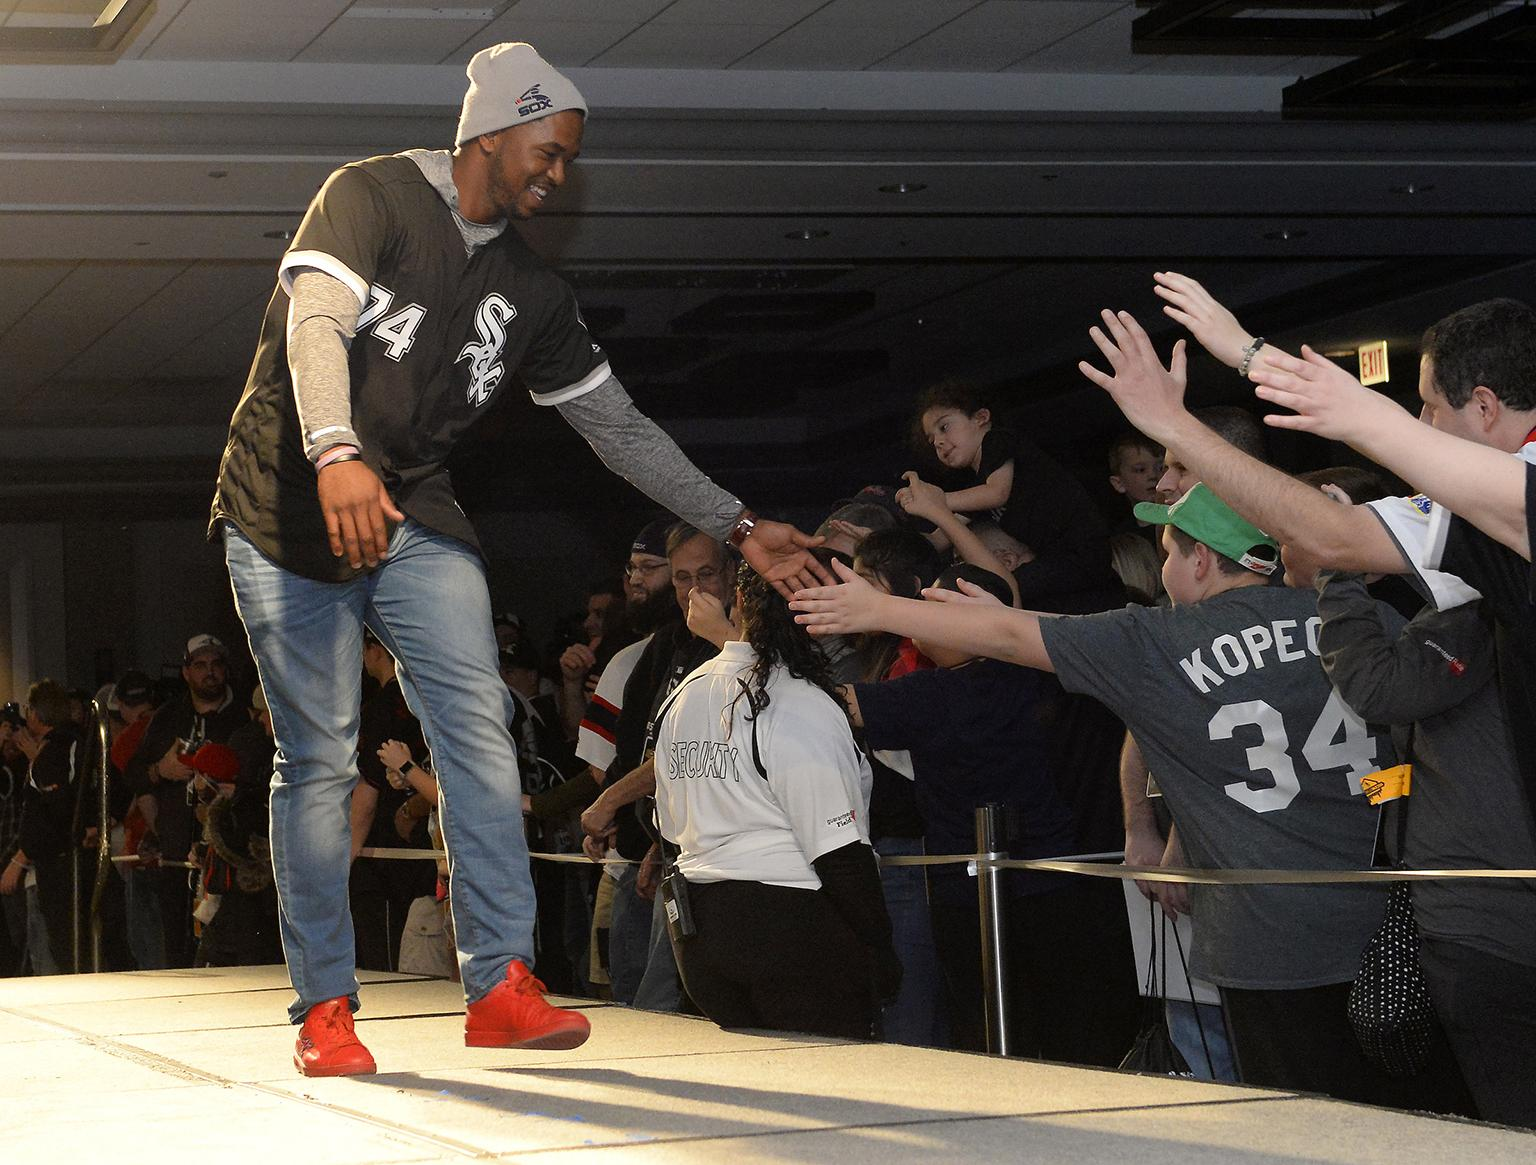 Eloy Jimenez greets fans at SoxFest in January. (Ron Vesely / Chicago White Sox)